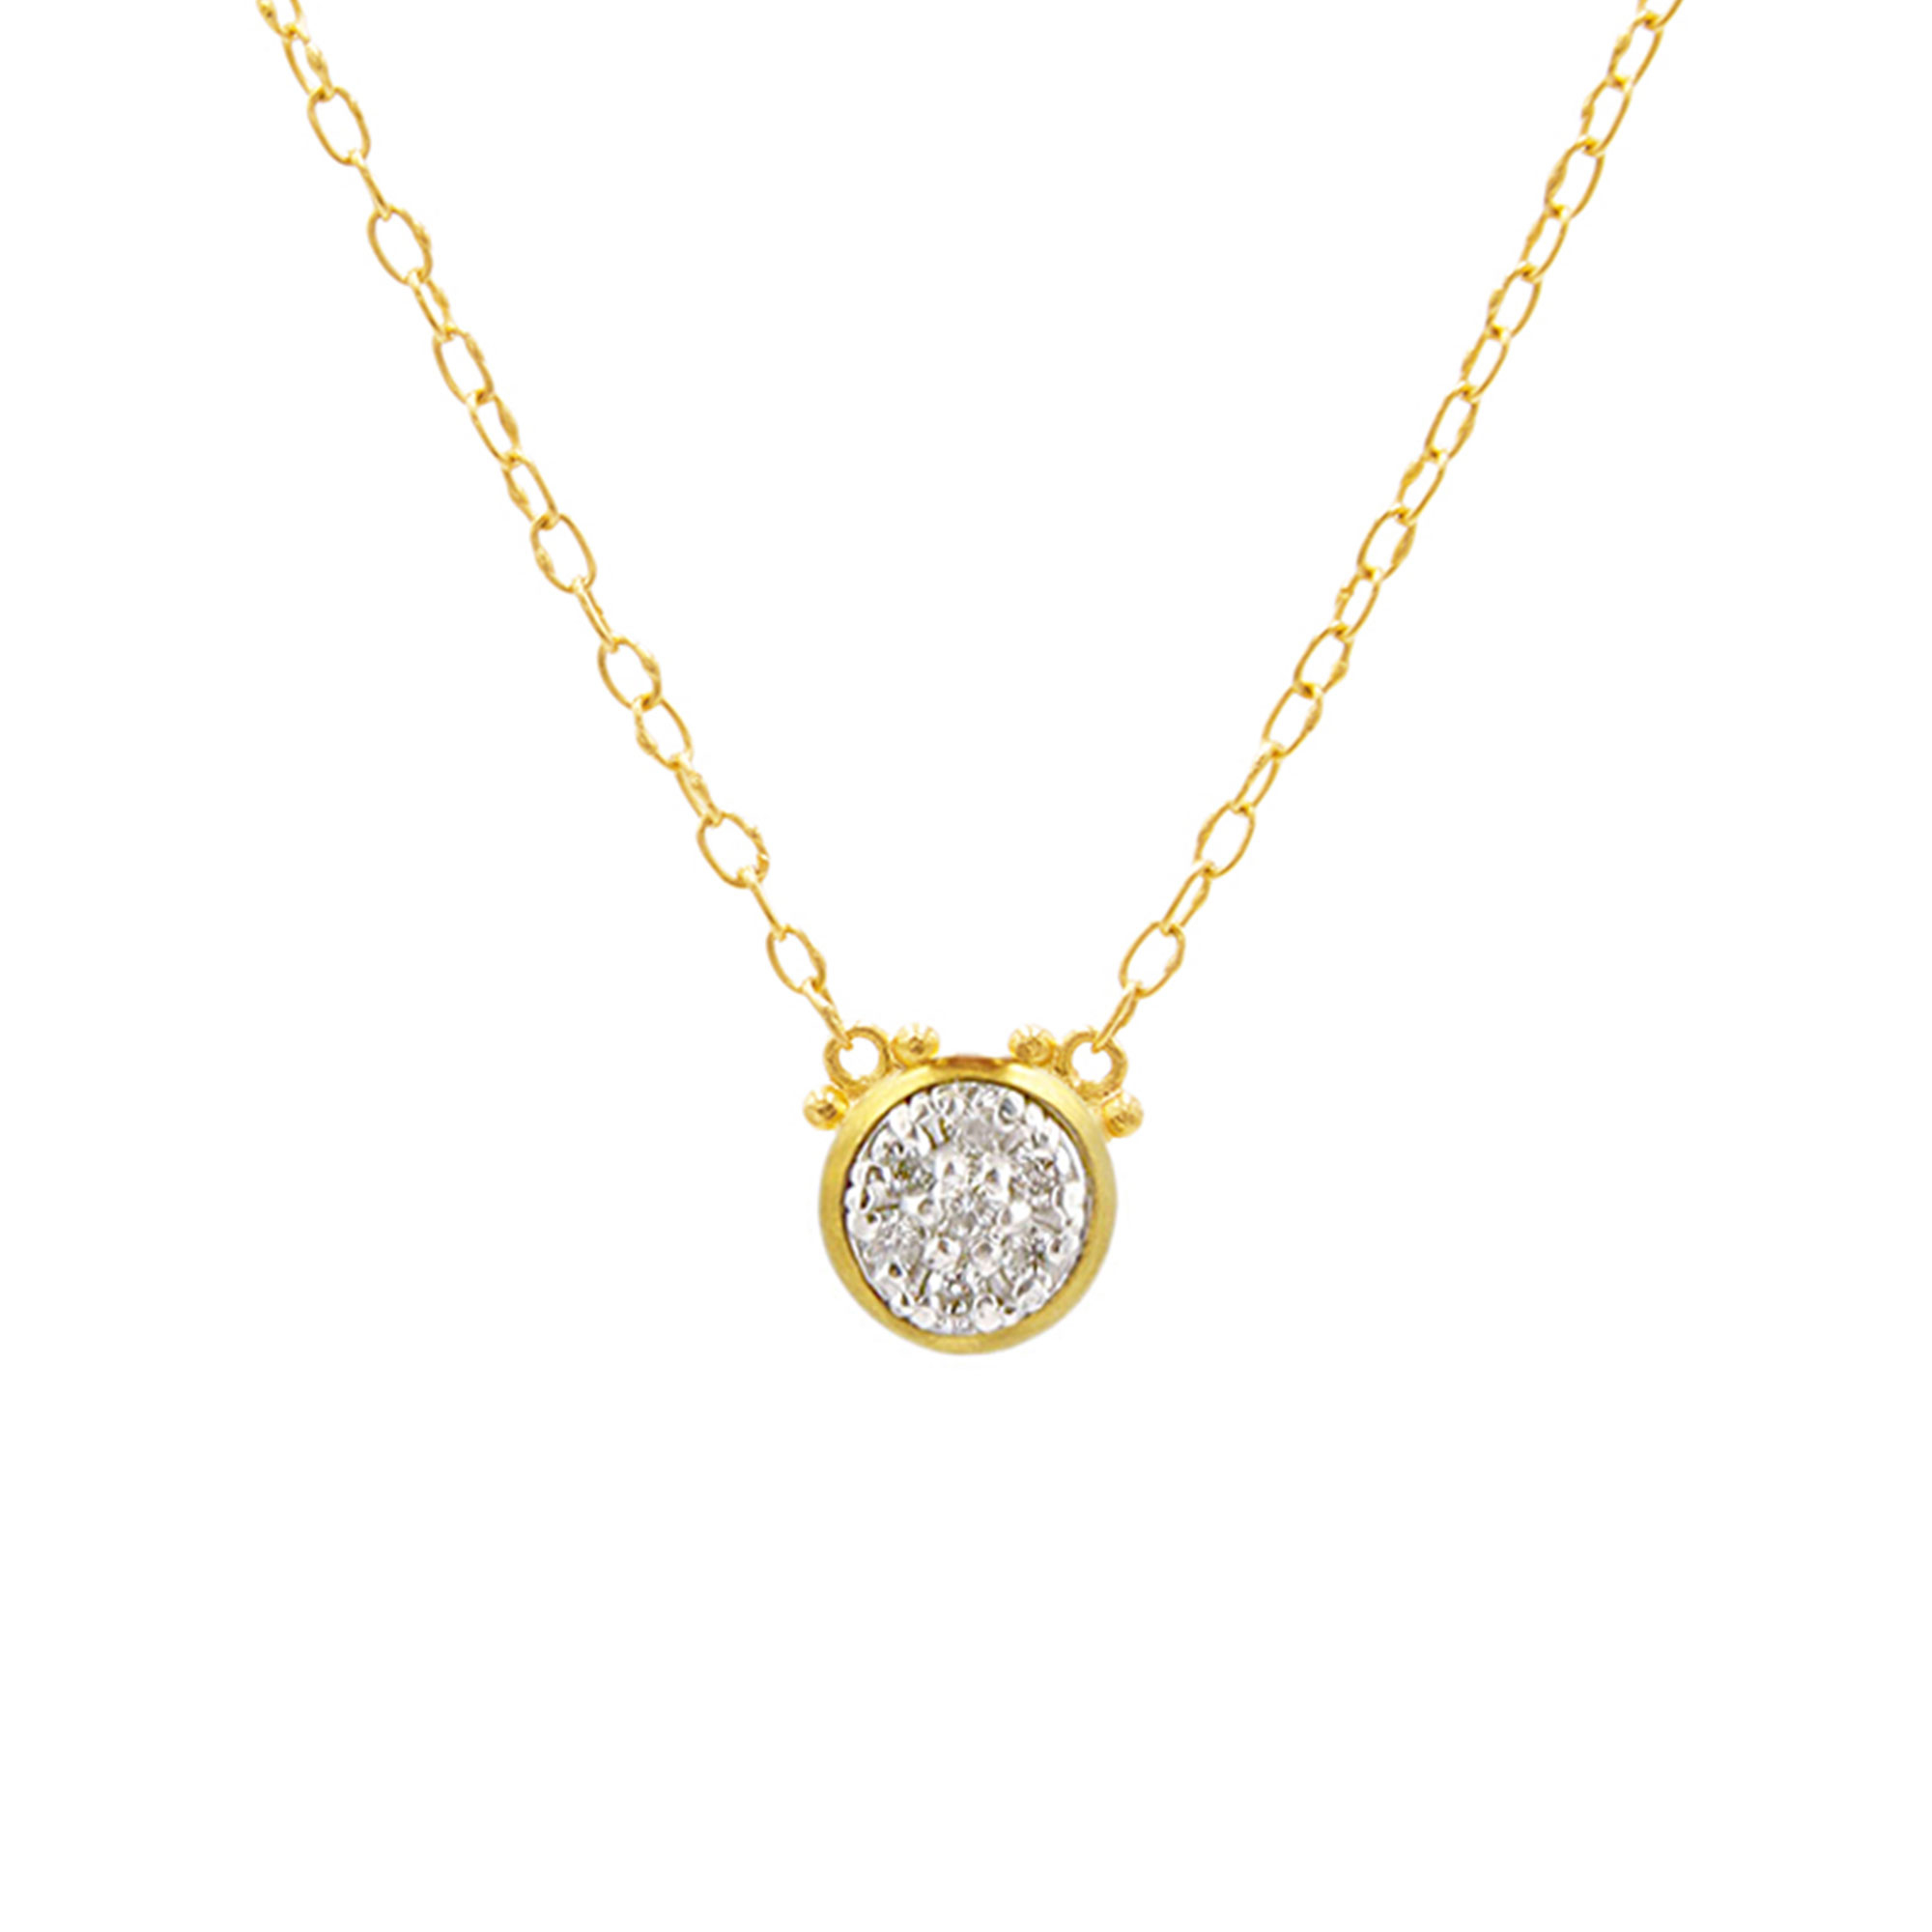 Gurhan 18-22-24K Yellow Gold .31cts White Diamond Gold Necklace with Stones CHN45-1PVRD-DI-S